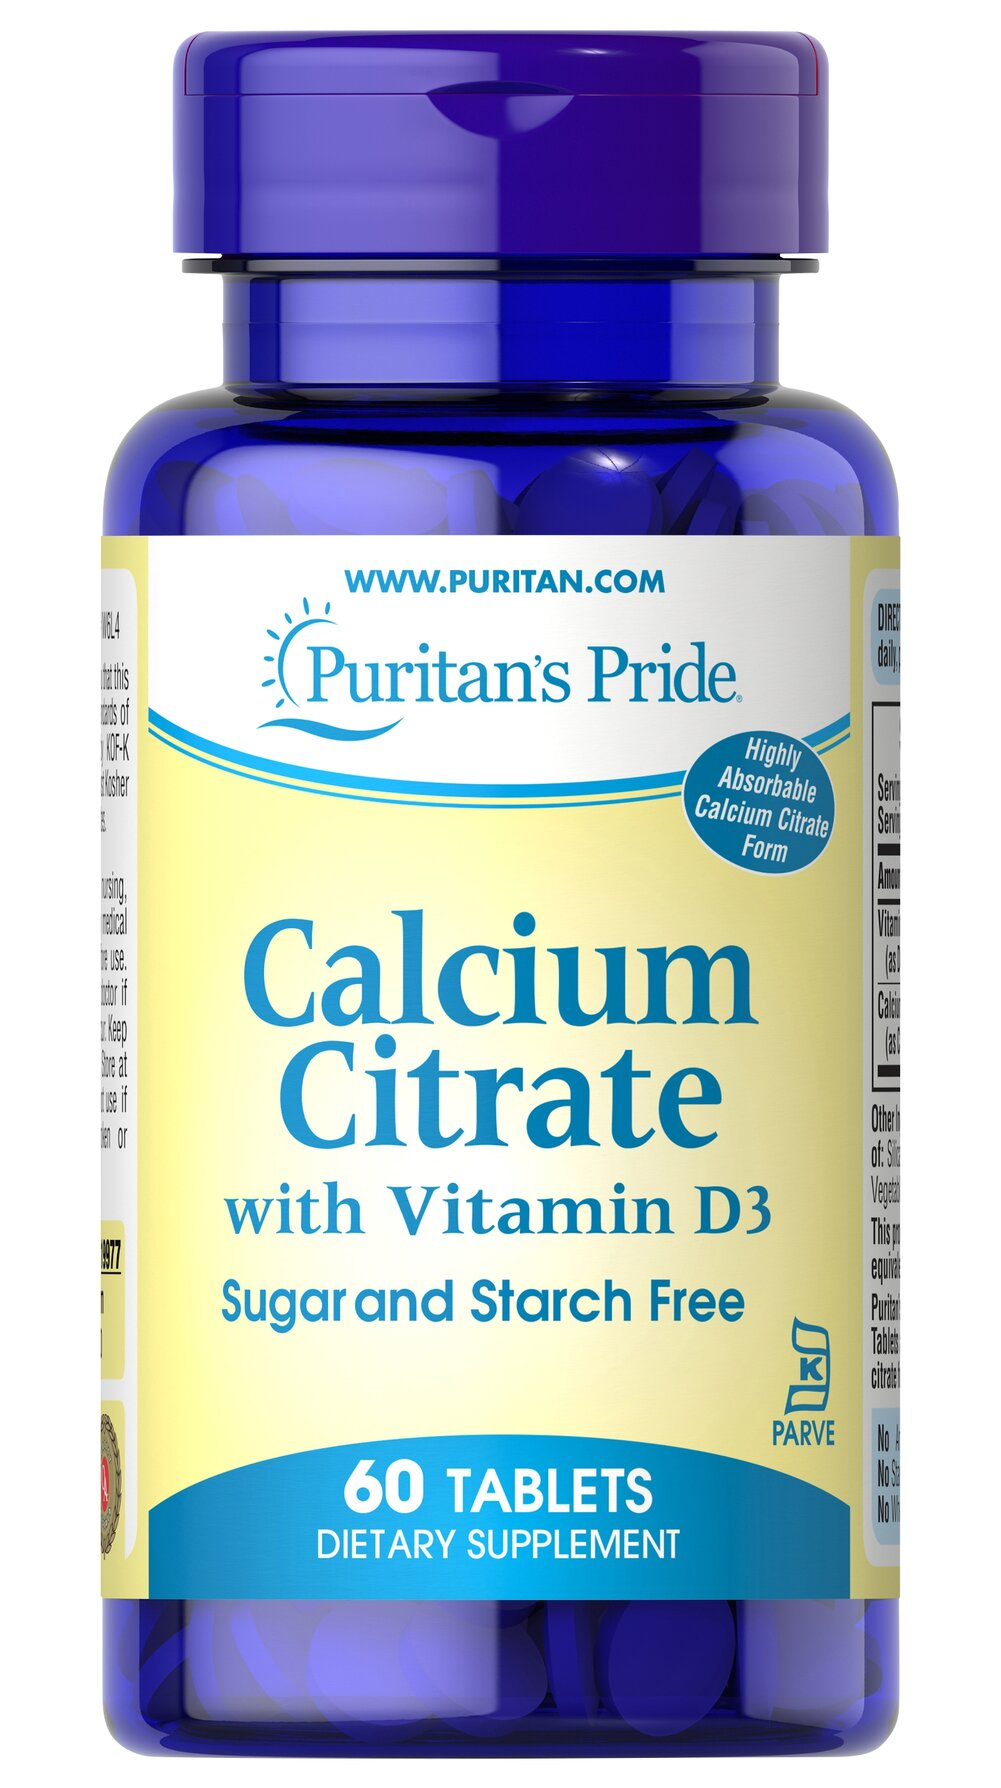 Calcium Citrate with Vitamin D Kosher <p>A Kosher/Vegetarian formulation of Calcium Citrate with Vitamin D – a potent combination for bone health and more!**</p><p>Made from Calcium Citrate – a highly absorbable form of this essential mineral</p><p>Calcium and Vitamin D work together to support bone and teeth health**</p><p>Promotes immune system health**</p><p>Prepared under KOF-K Kosher Supervision</p> 60 Tablets 1000 mg/600 IU $12.29